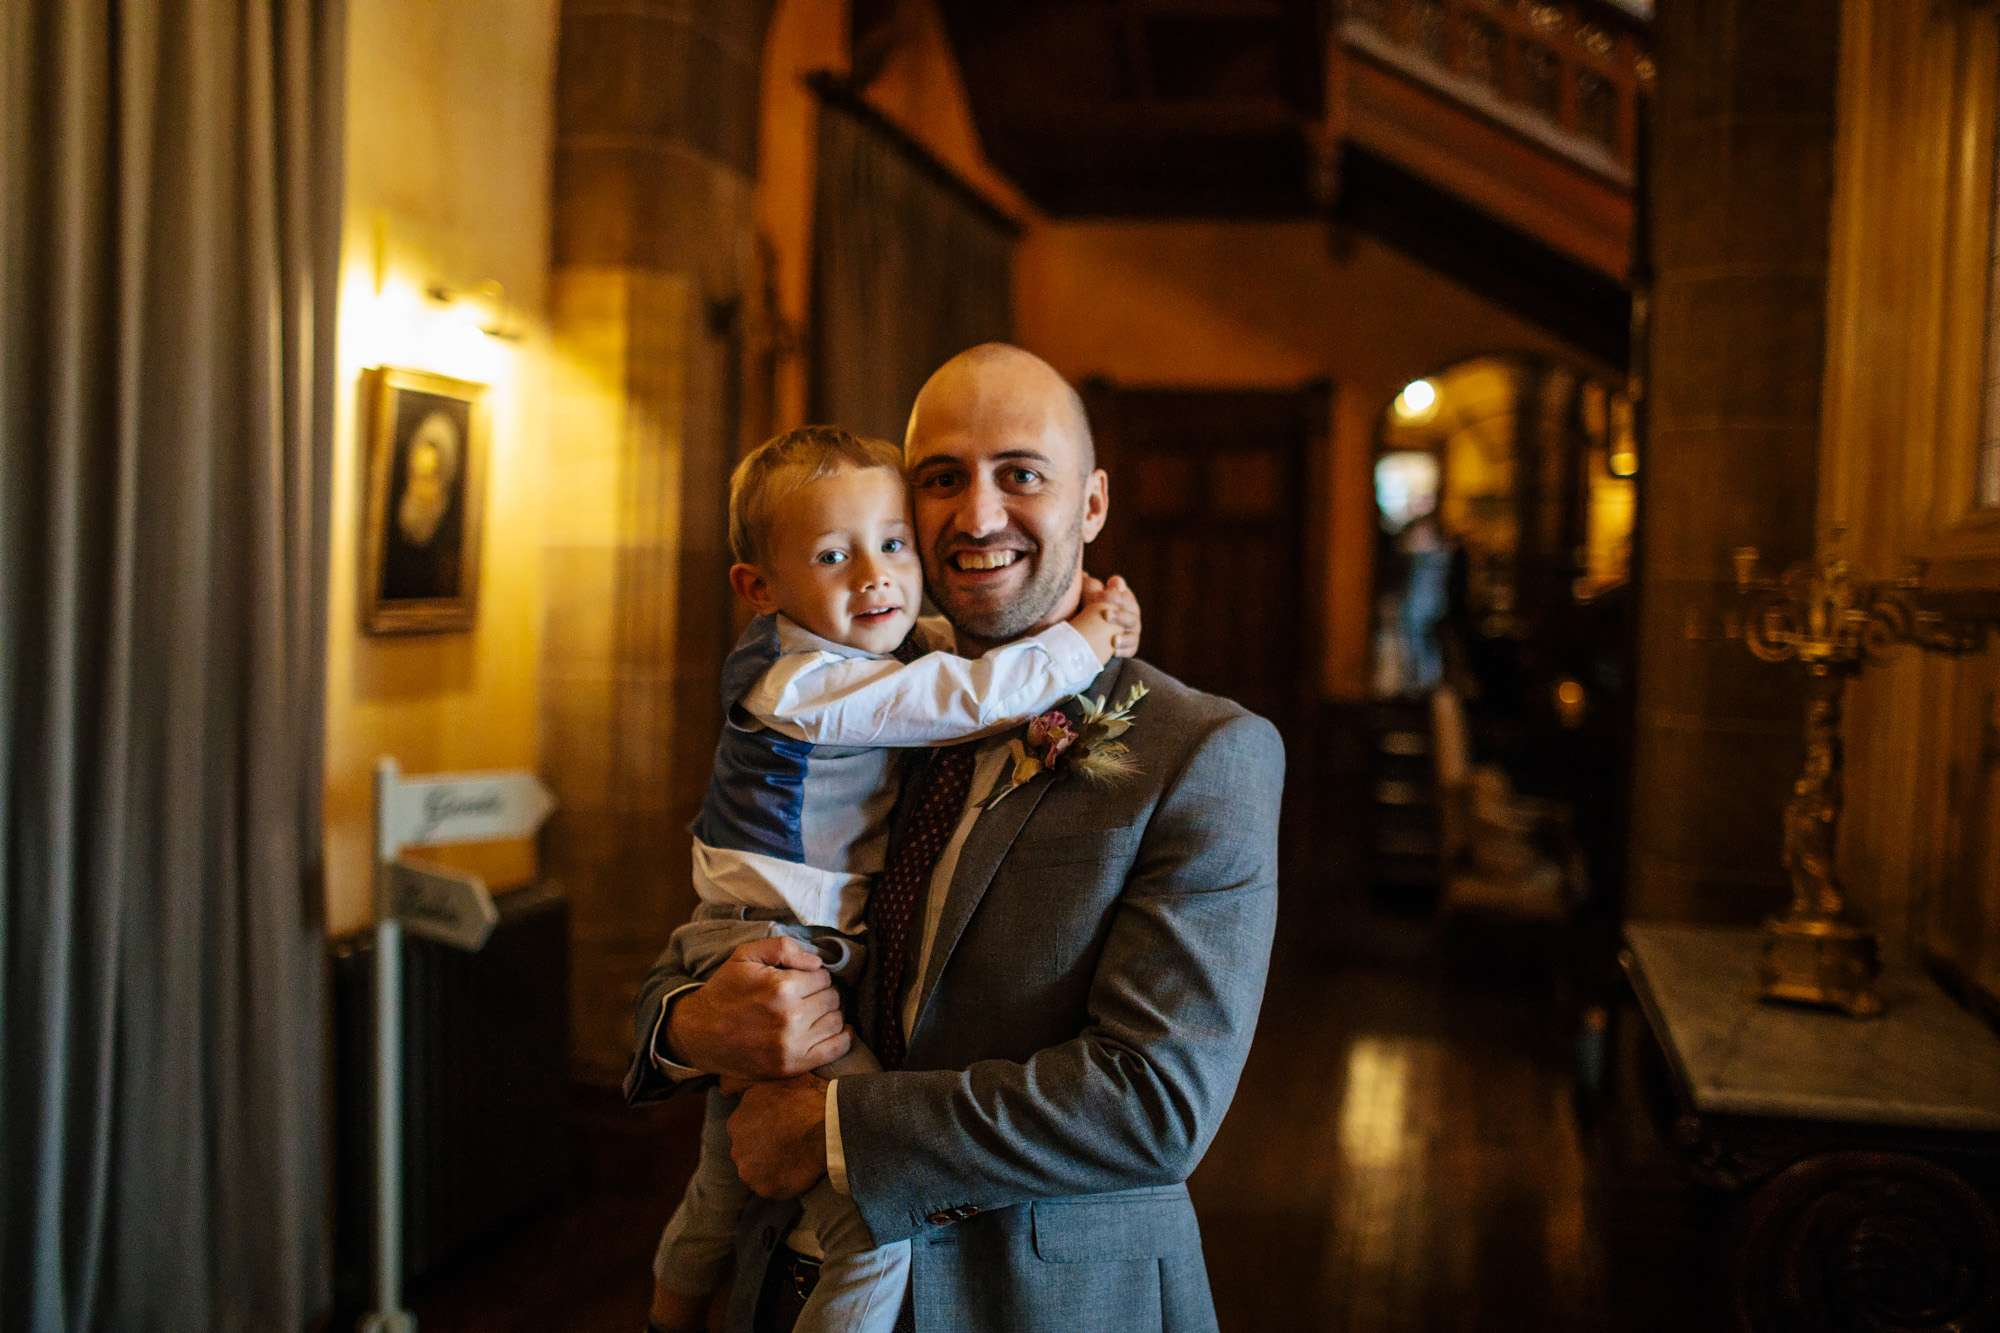 Best man with his son at a wedding